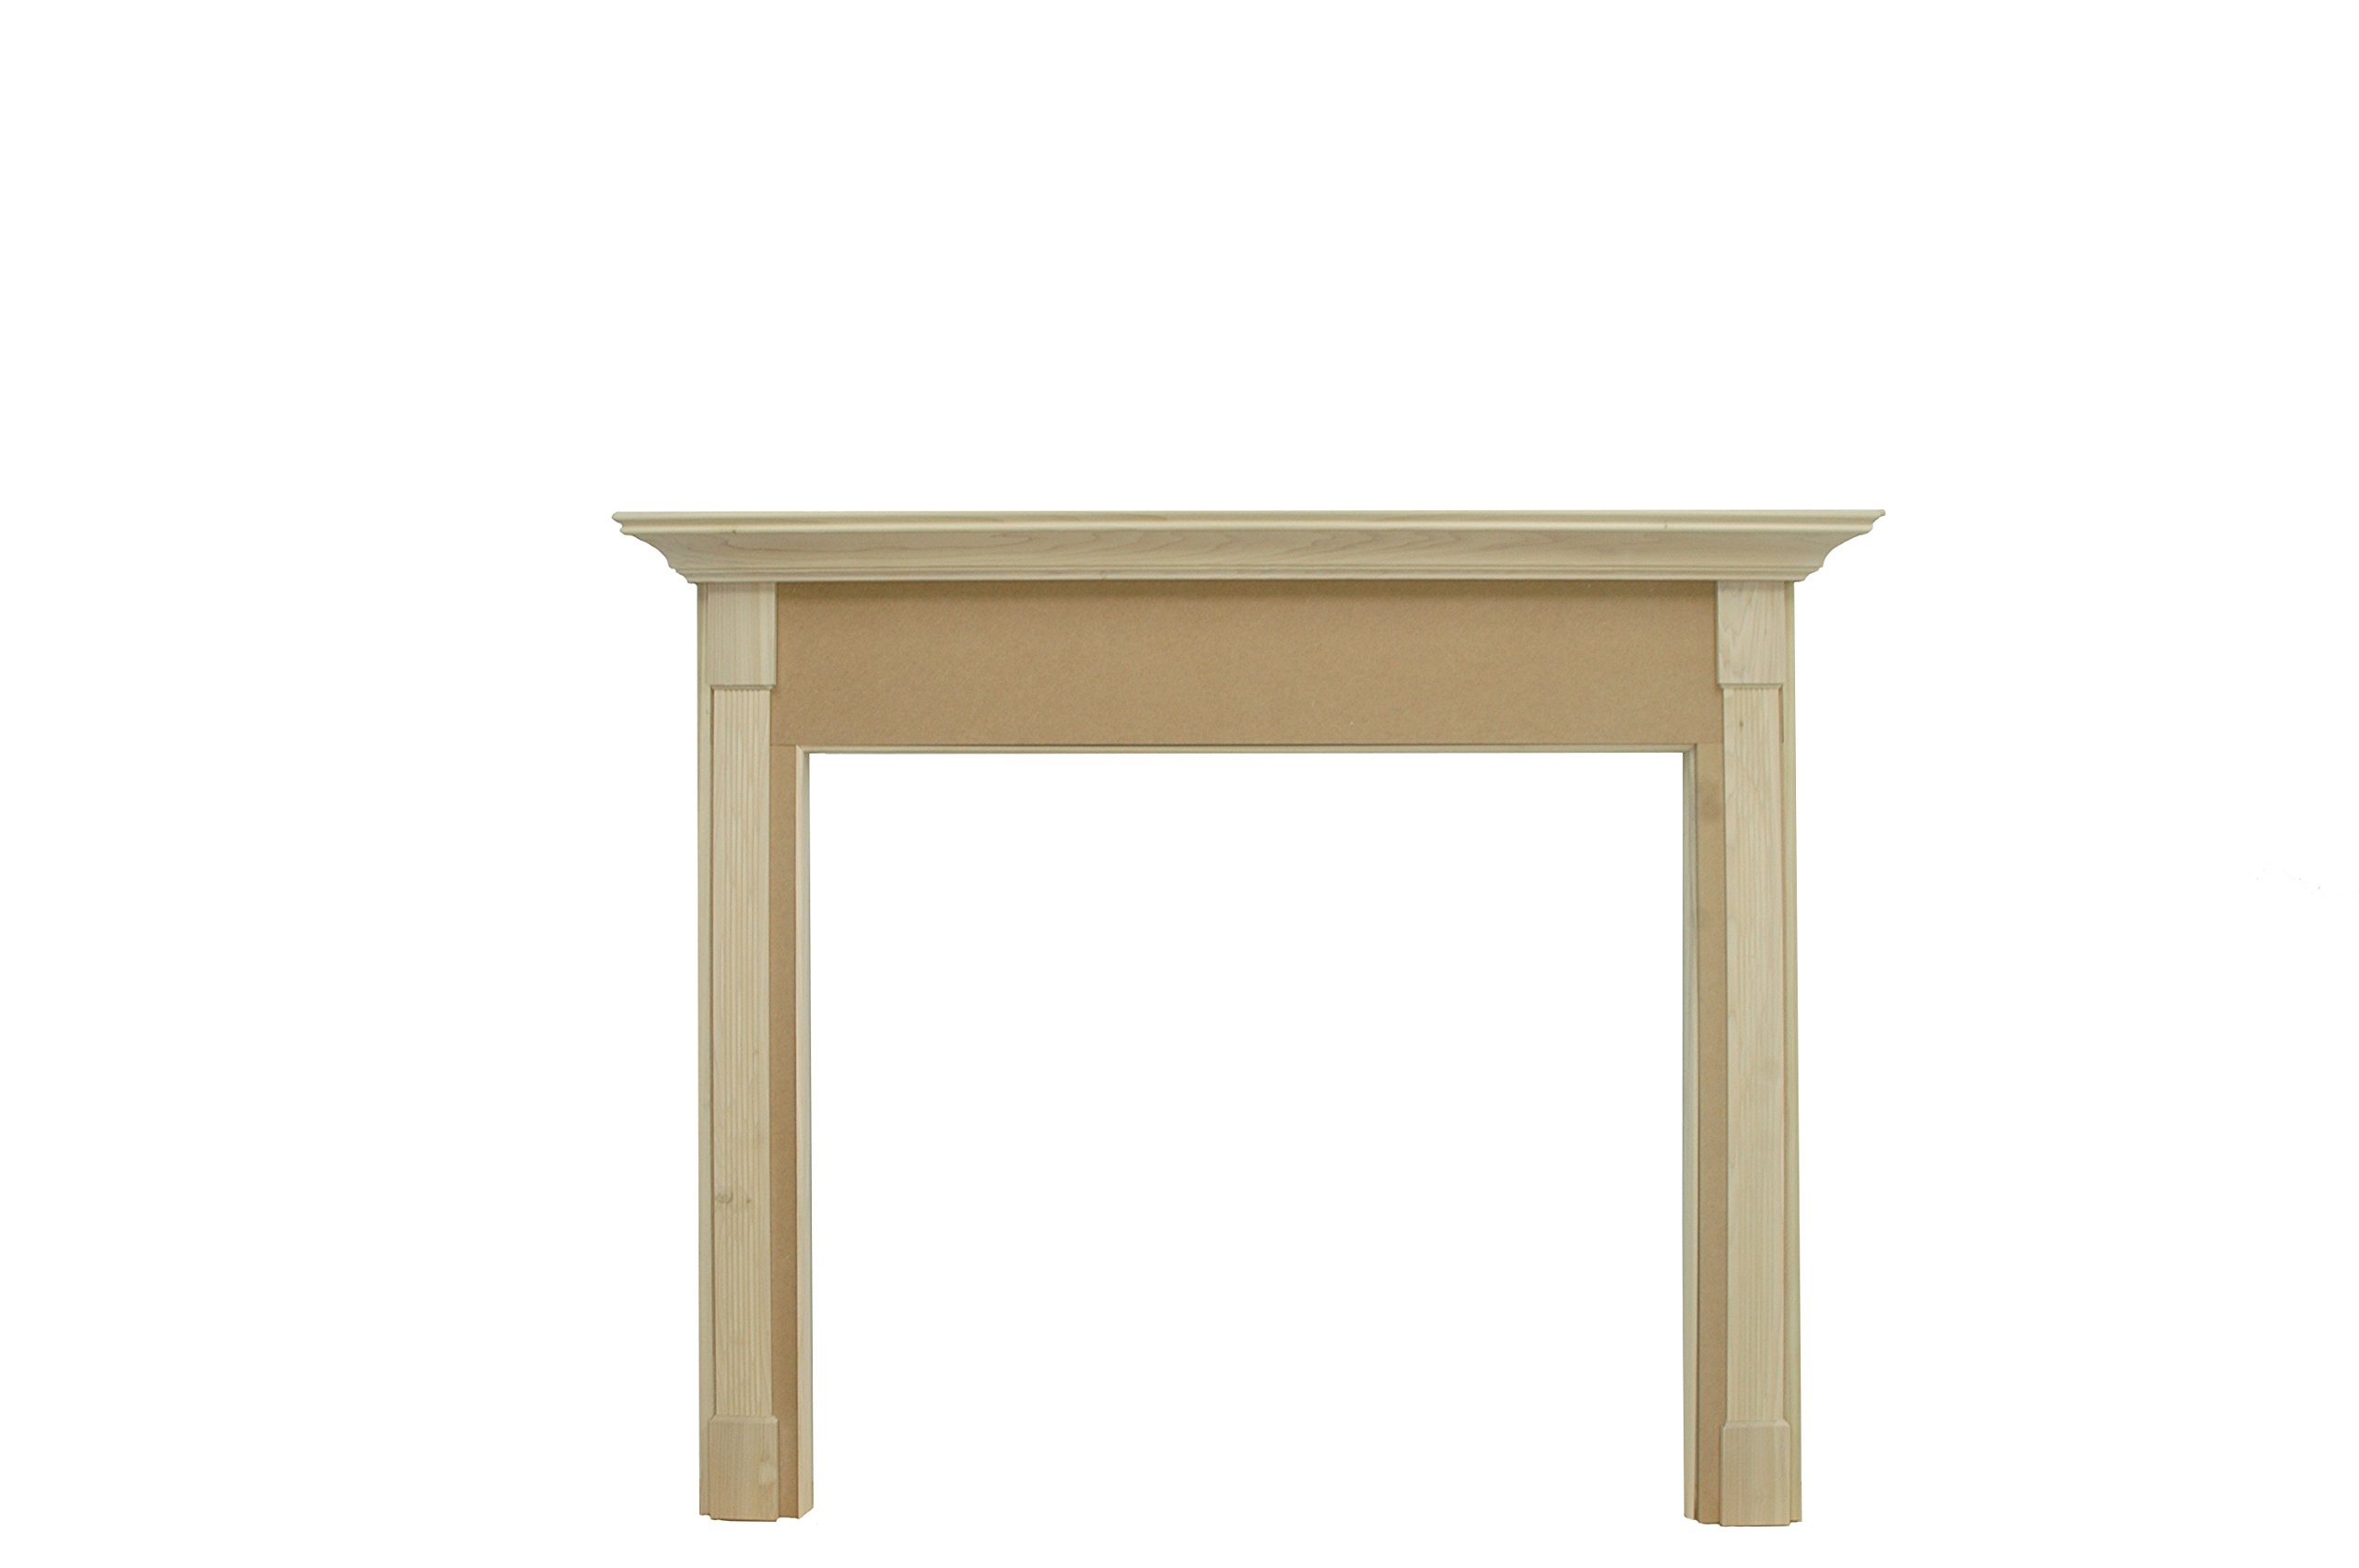 New England Classic Paint Grade Unfinished Greenhill Fireplace Mantel 54'' x 42'' x 1 1/2'' by New England Classic